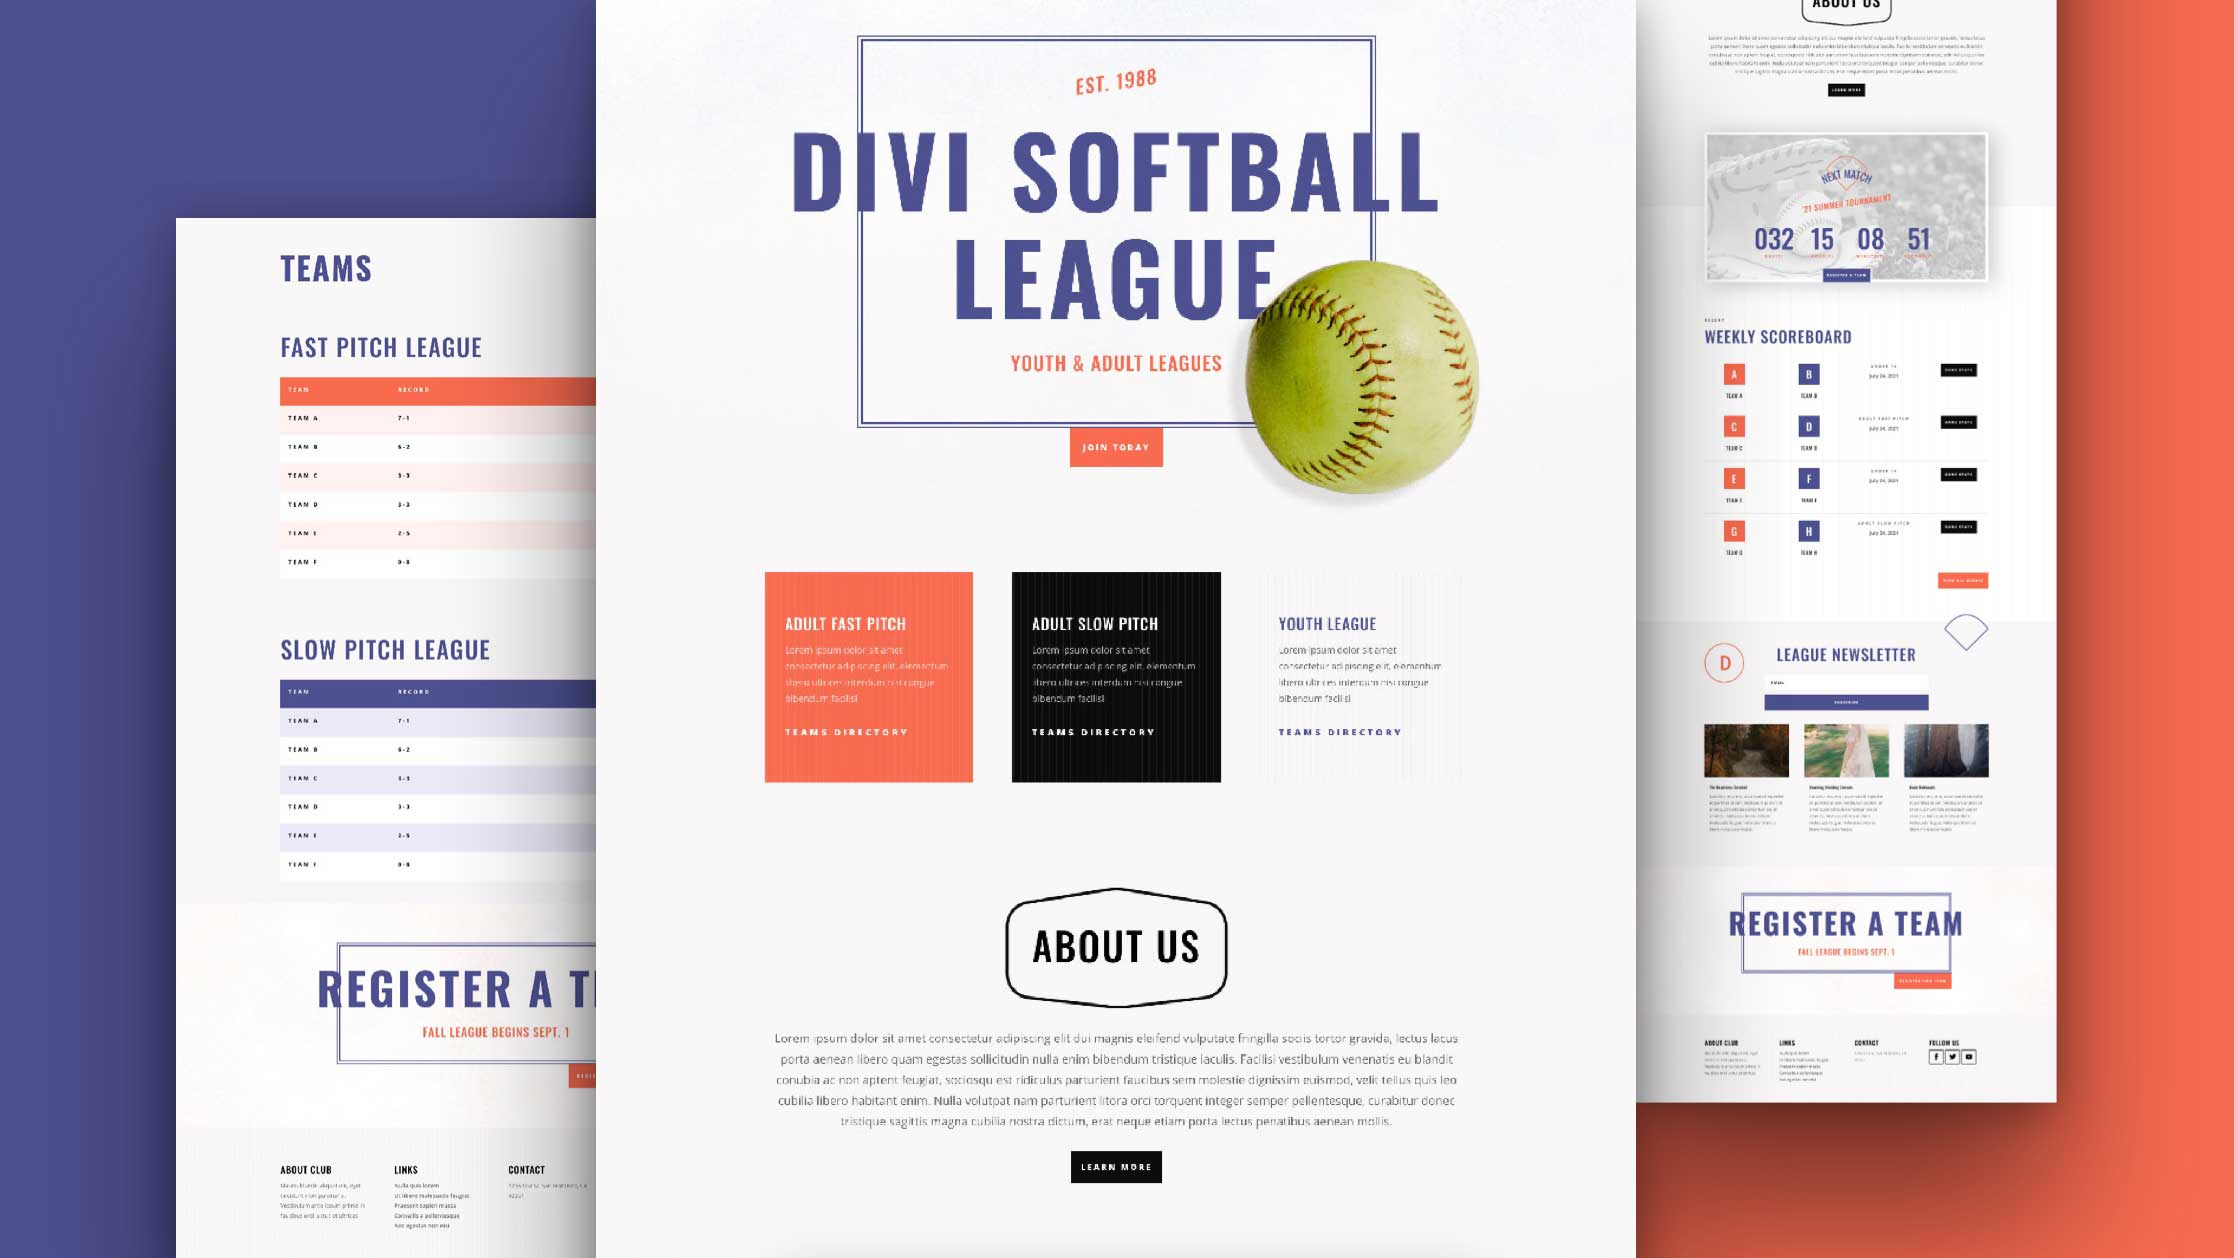 Get a FREE Softball League Layout Pack for Divi